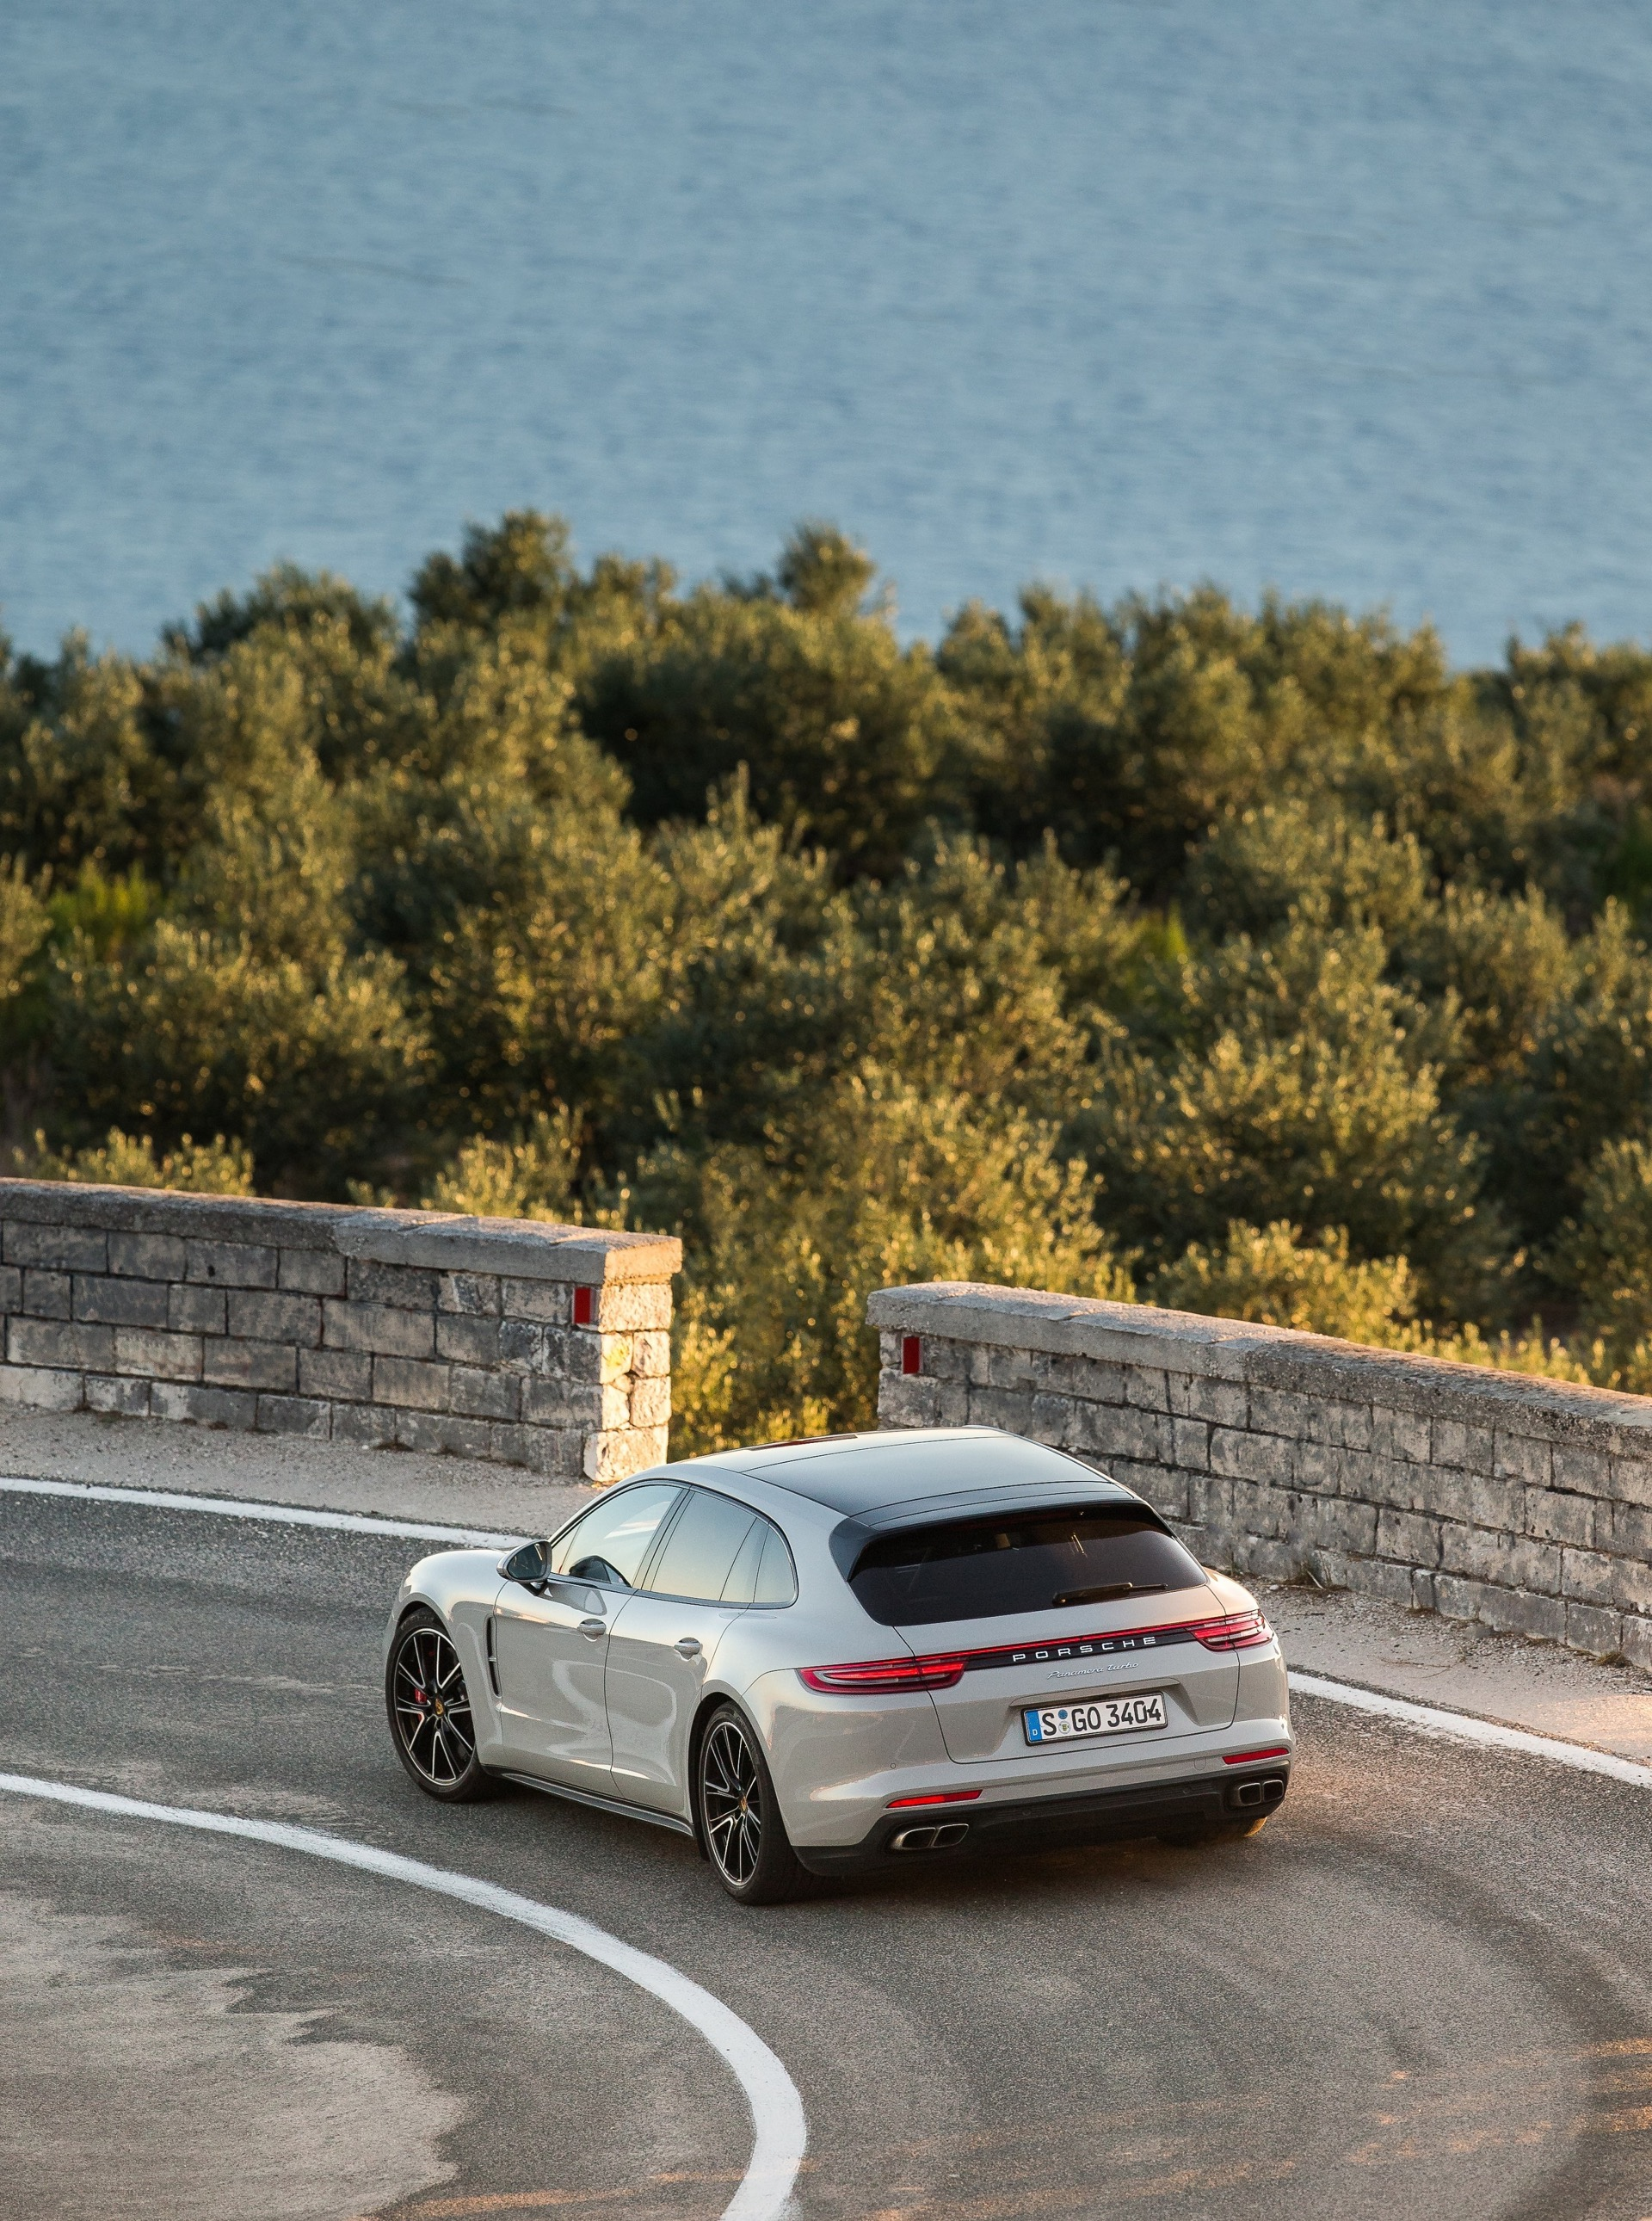 Porsche Panamera Sport Turismo regional press launch event. Croatia 2017. Photos by KL-Photo.com